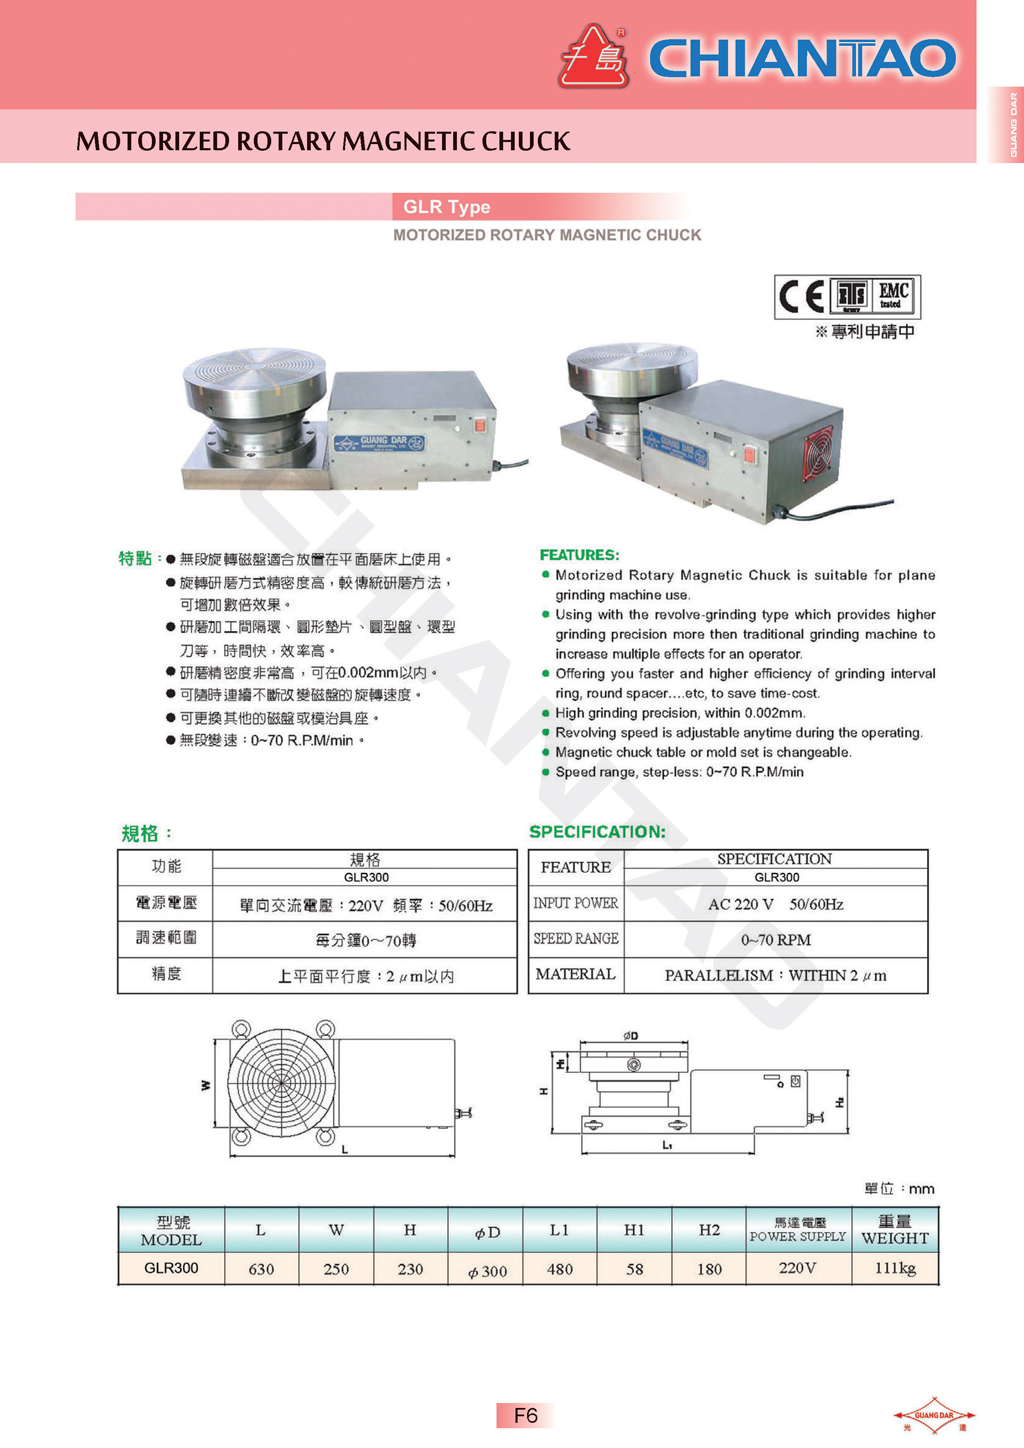 hight resolution of page f5 glr type motorized rotary magnetic chuck